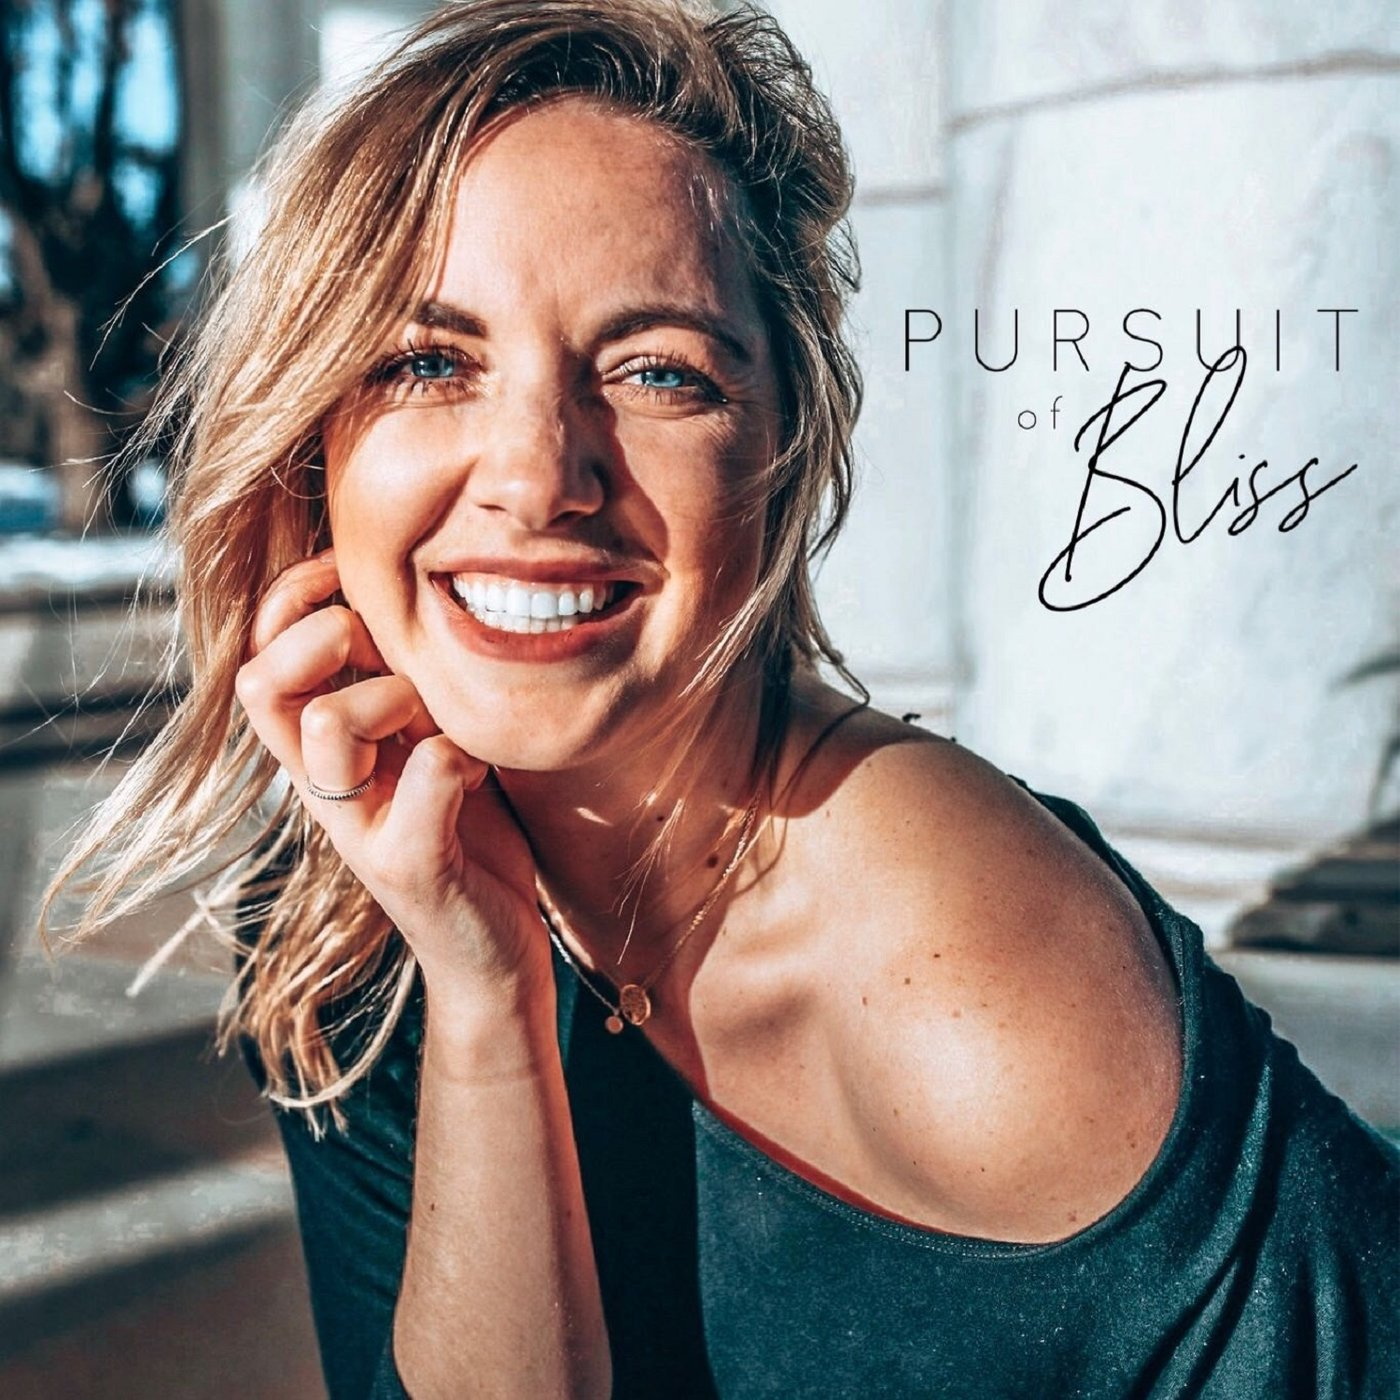 Pursuit of Bliss